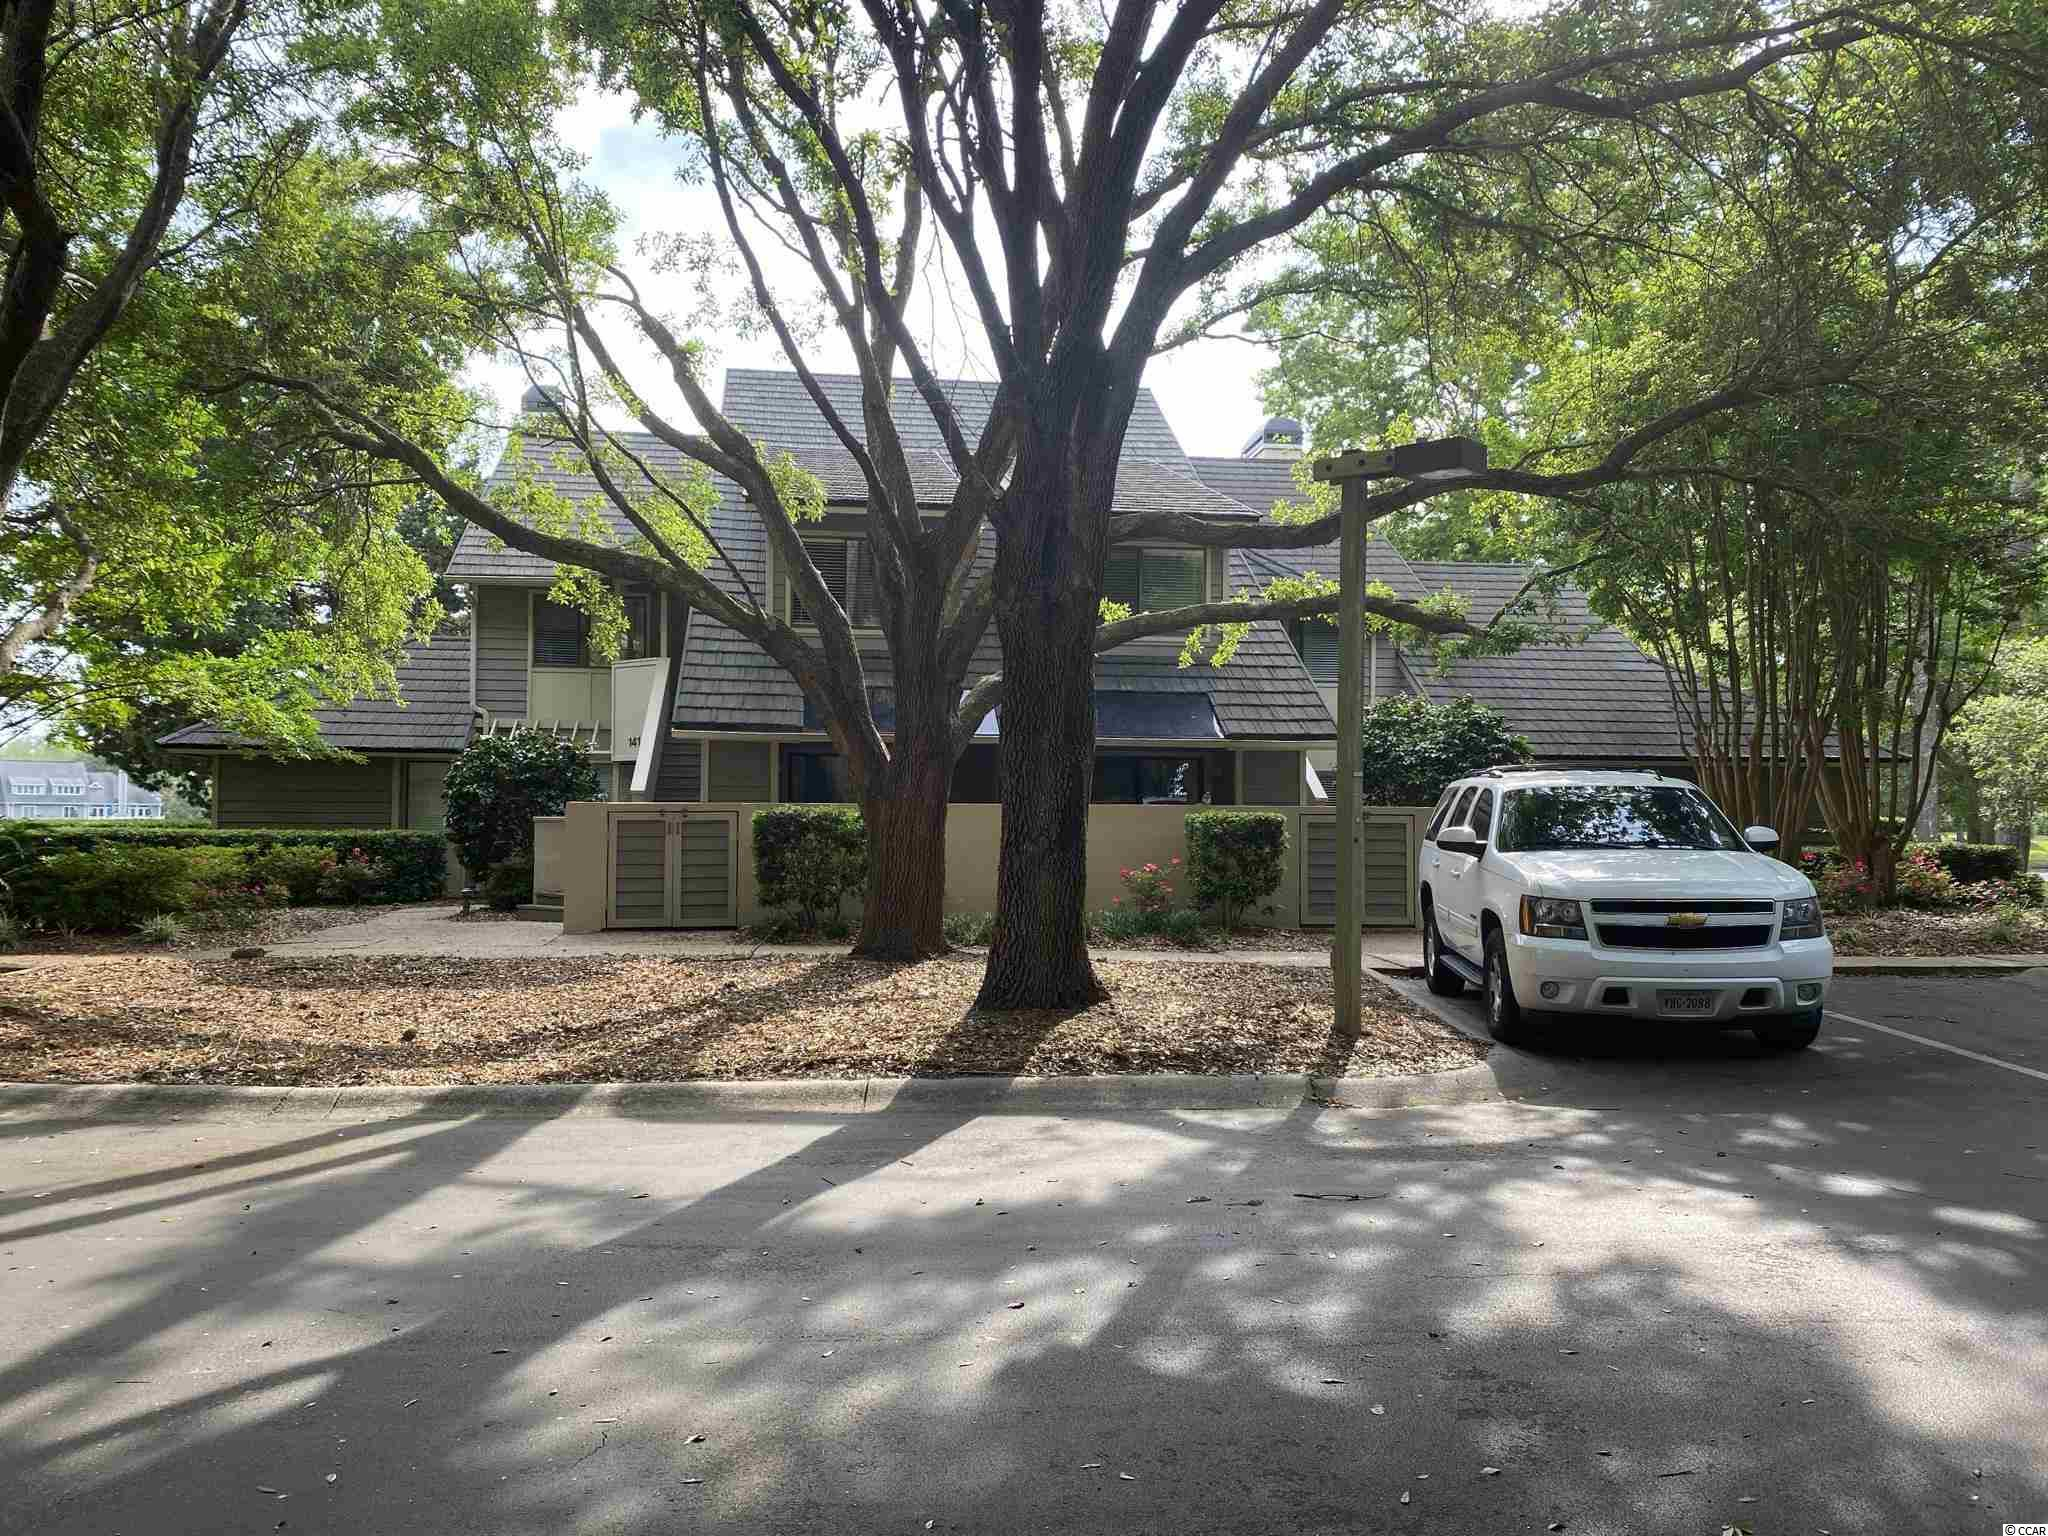 """You will fall in love with this three bedroom, three bath Richmond Park, LAKEVIEW villa, second floor unit has cathedral ceilings and no one over your head. This home has 18"""" tile flooring throughout for easy care.  Upgraded kitchen has granite counter tops, wood cabinets and stainless appliances.  All three baths have upgraded vanities with granite tops.  Master bath has a tiled, walk-in shower.  Located just a very short walk to the Richmond Park owners pool.  Very easy walk to the Richmond Park owners pool.  Very easy walk to the beach and the Embassy Suites Hotel.  The hotel features 2 pools, a fun filled water park and various dining venues.  Also easy walk to Kingston's Spa and Fitness Center which offers a heated, indoor pool, all the latest in workout equipment, tennis and pickle ball, a large putting green and all the soothing spa treatments.  Paradise found!"""